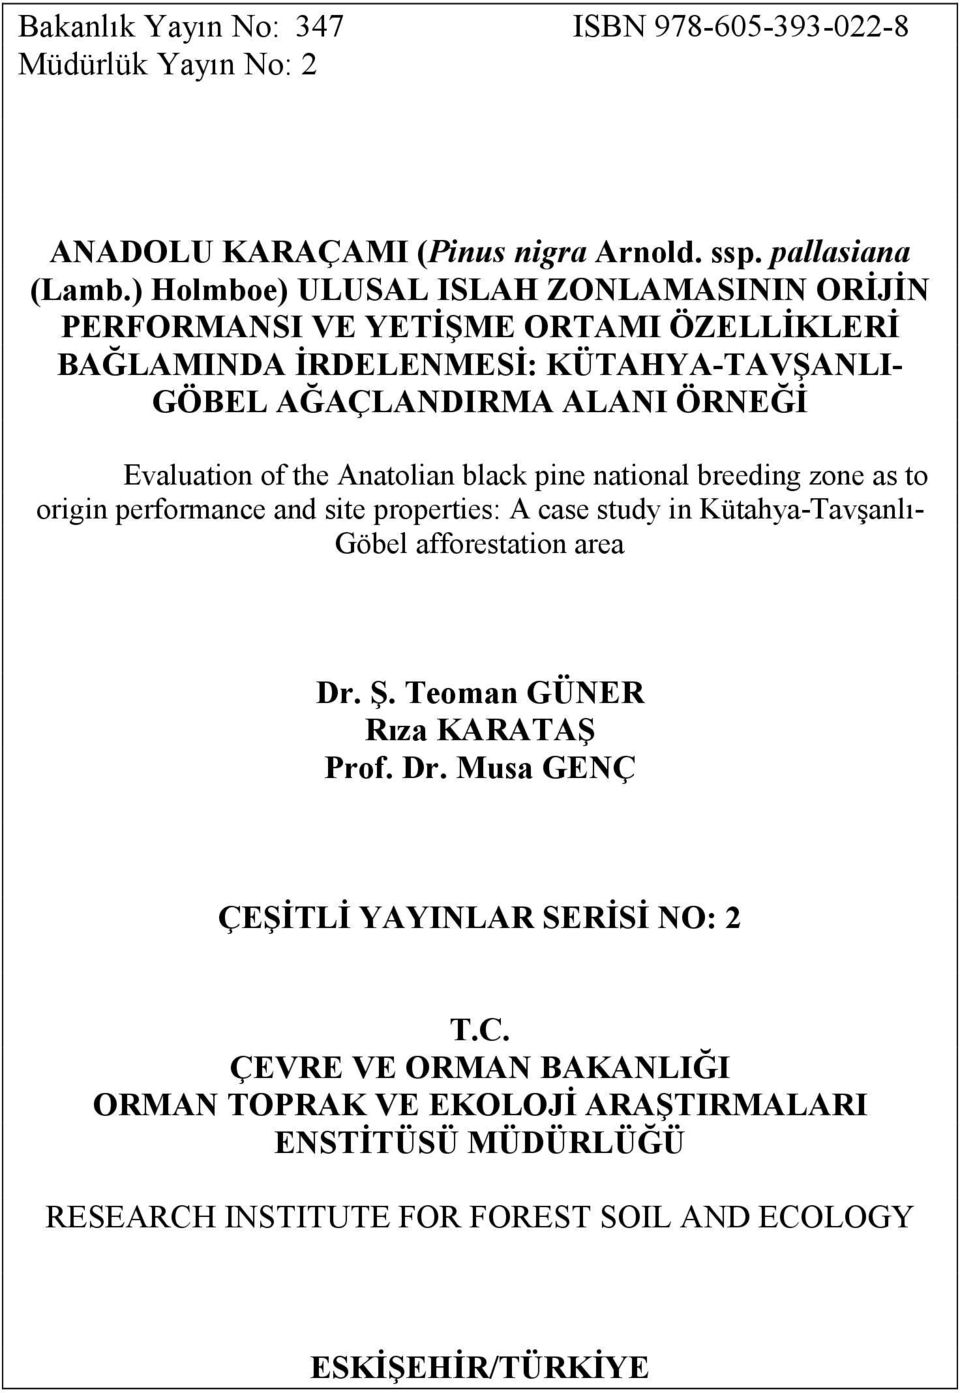 Evlution of the Antolin blck pine ntionl breeding zone s to origin performnce nd site properties: A cse study in Küthy-Tvşnlı- Göbel fforesttion re Dr. Ş.